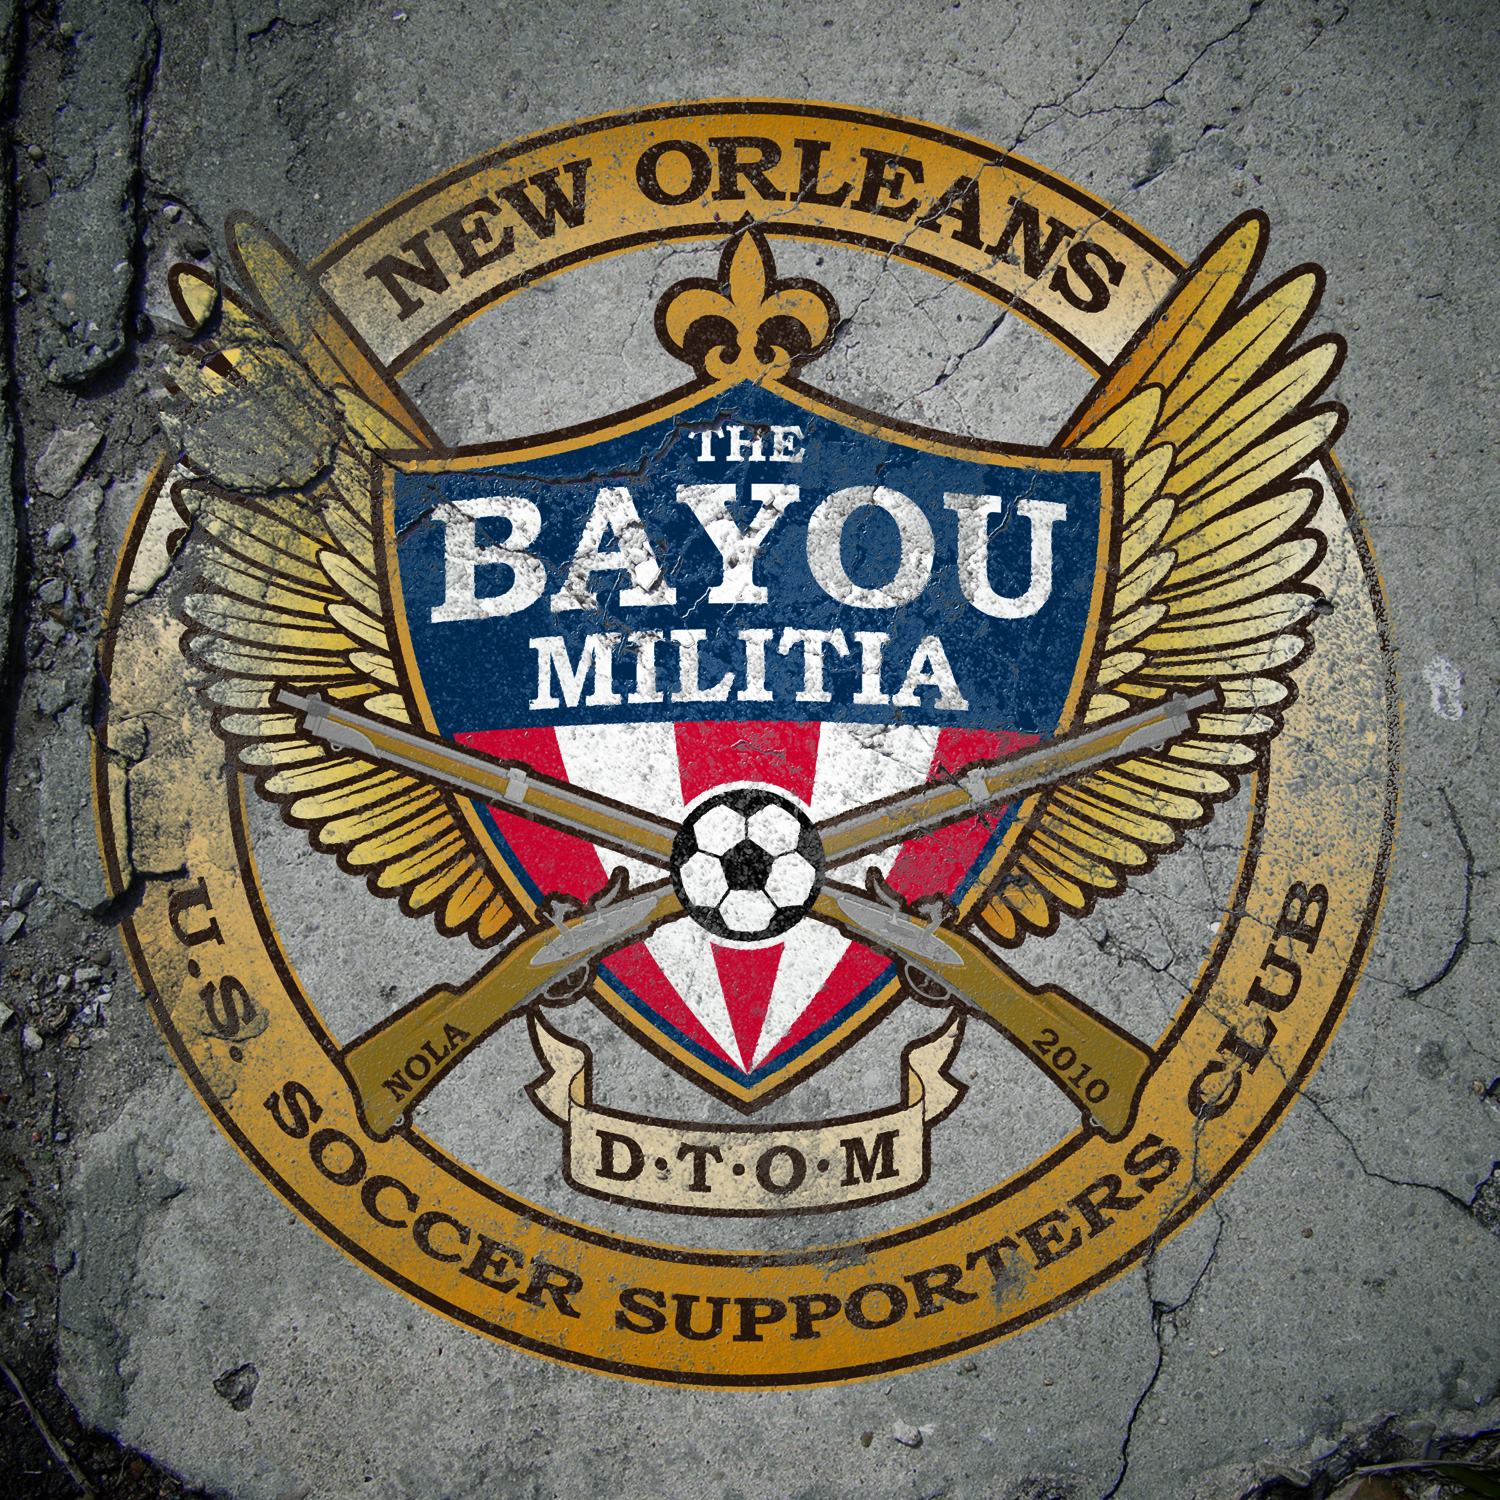 The Bayou Militia